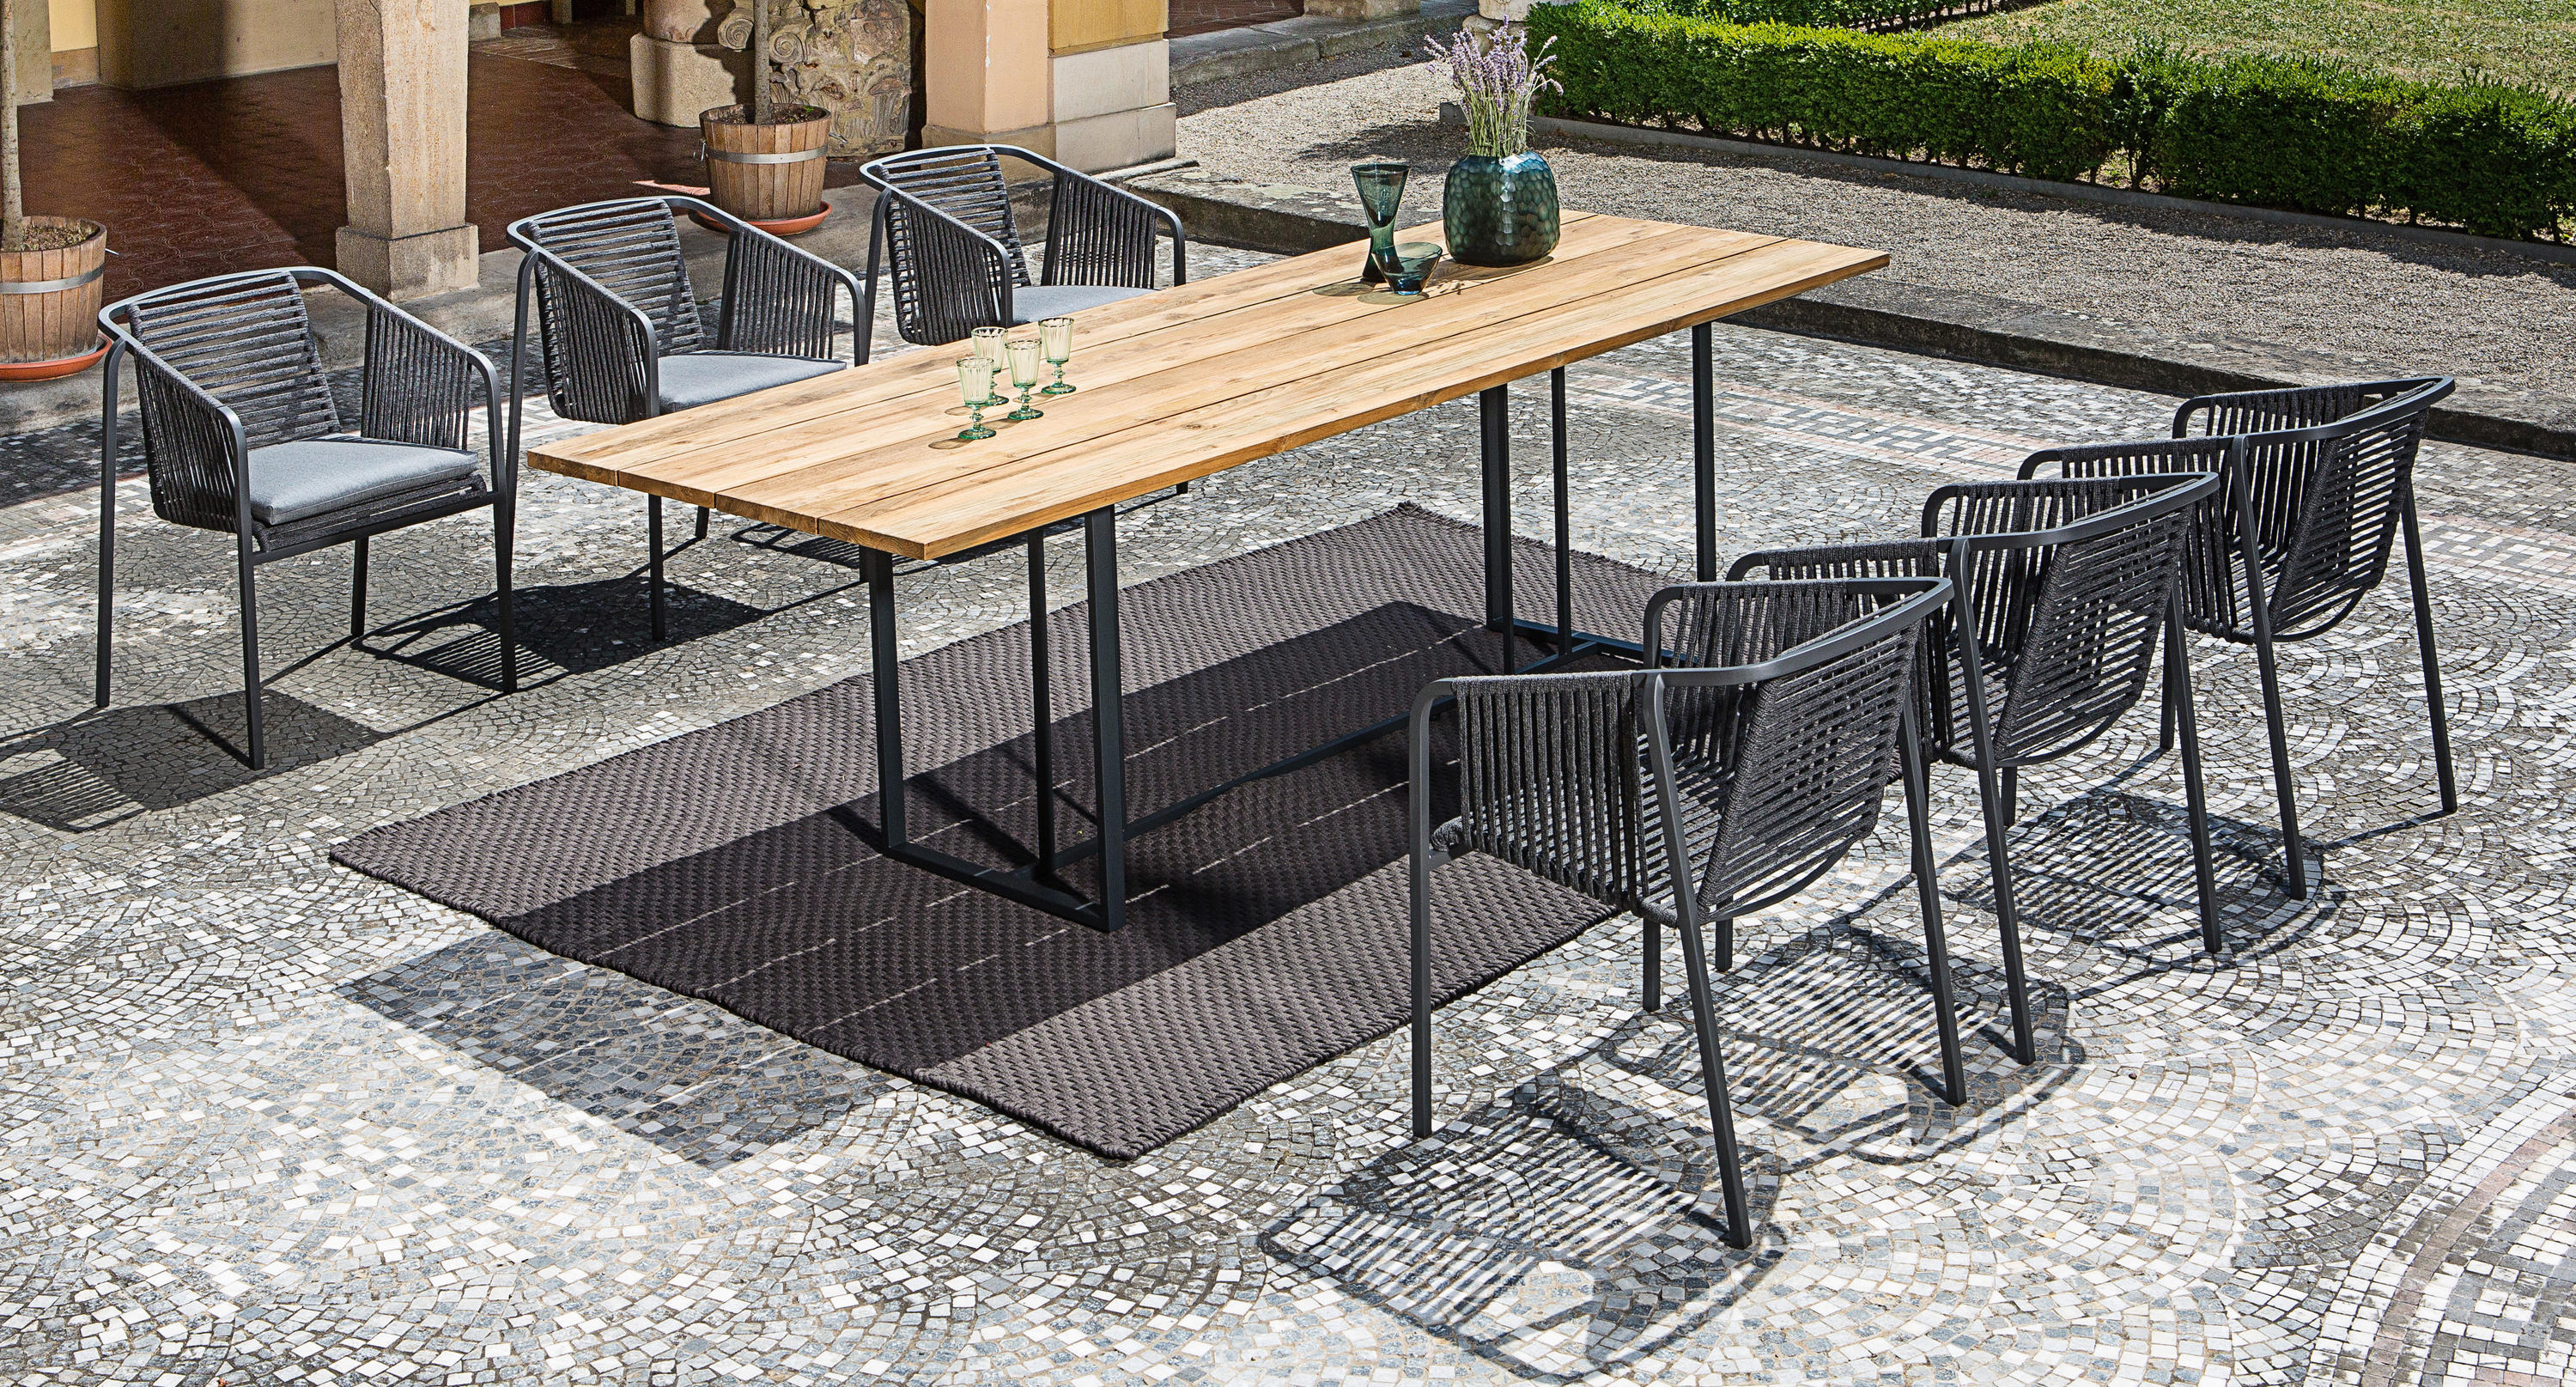 SUITE CANTILEVER CHAIR - Garden chairs from Fischer Möbel   Architonic